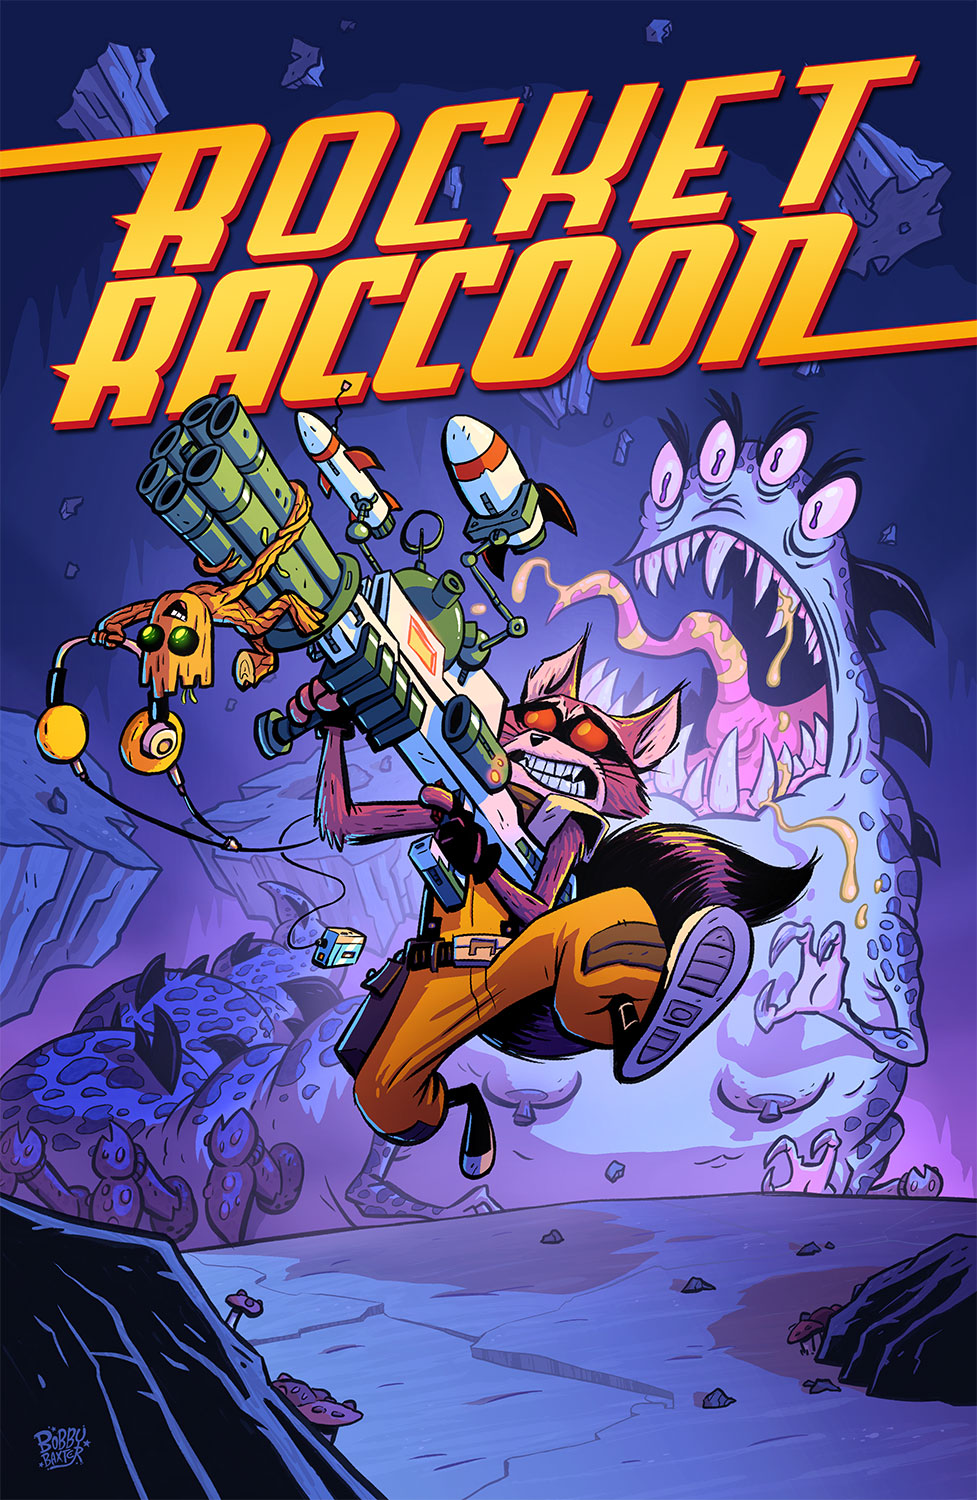 Rocket Raccoon Cover by BobbyBaxter on DeviantArt